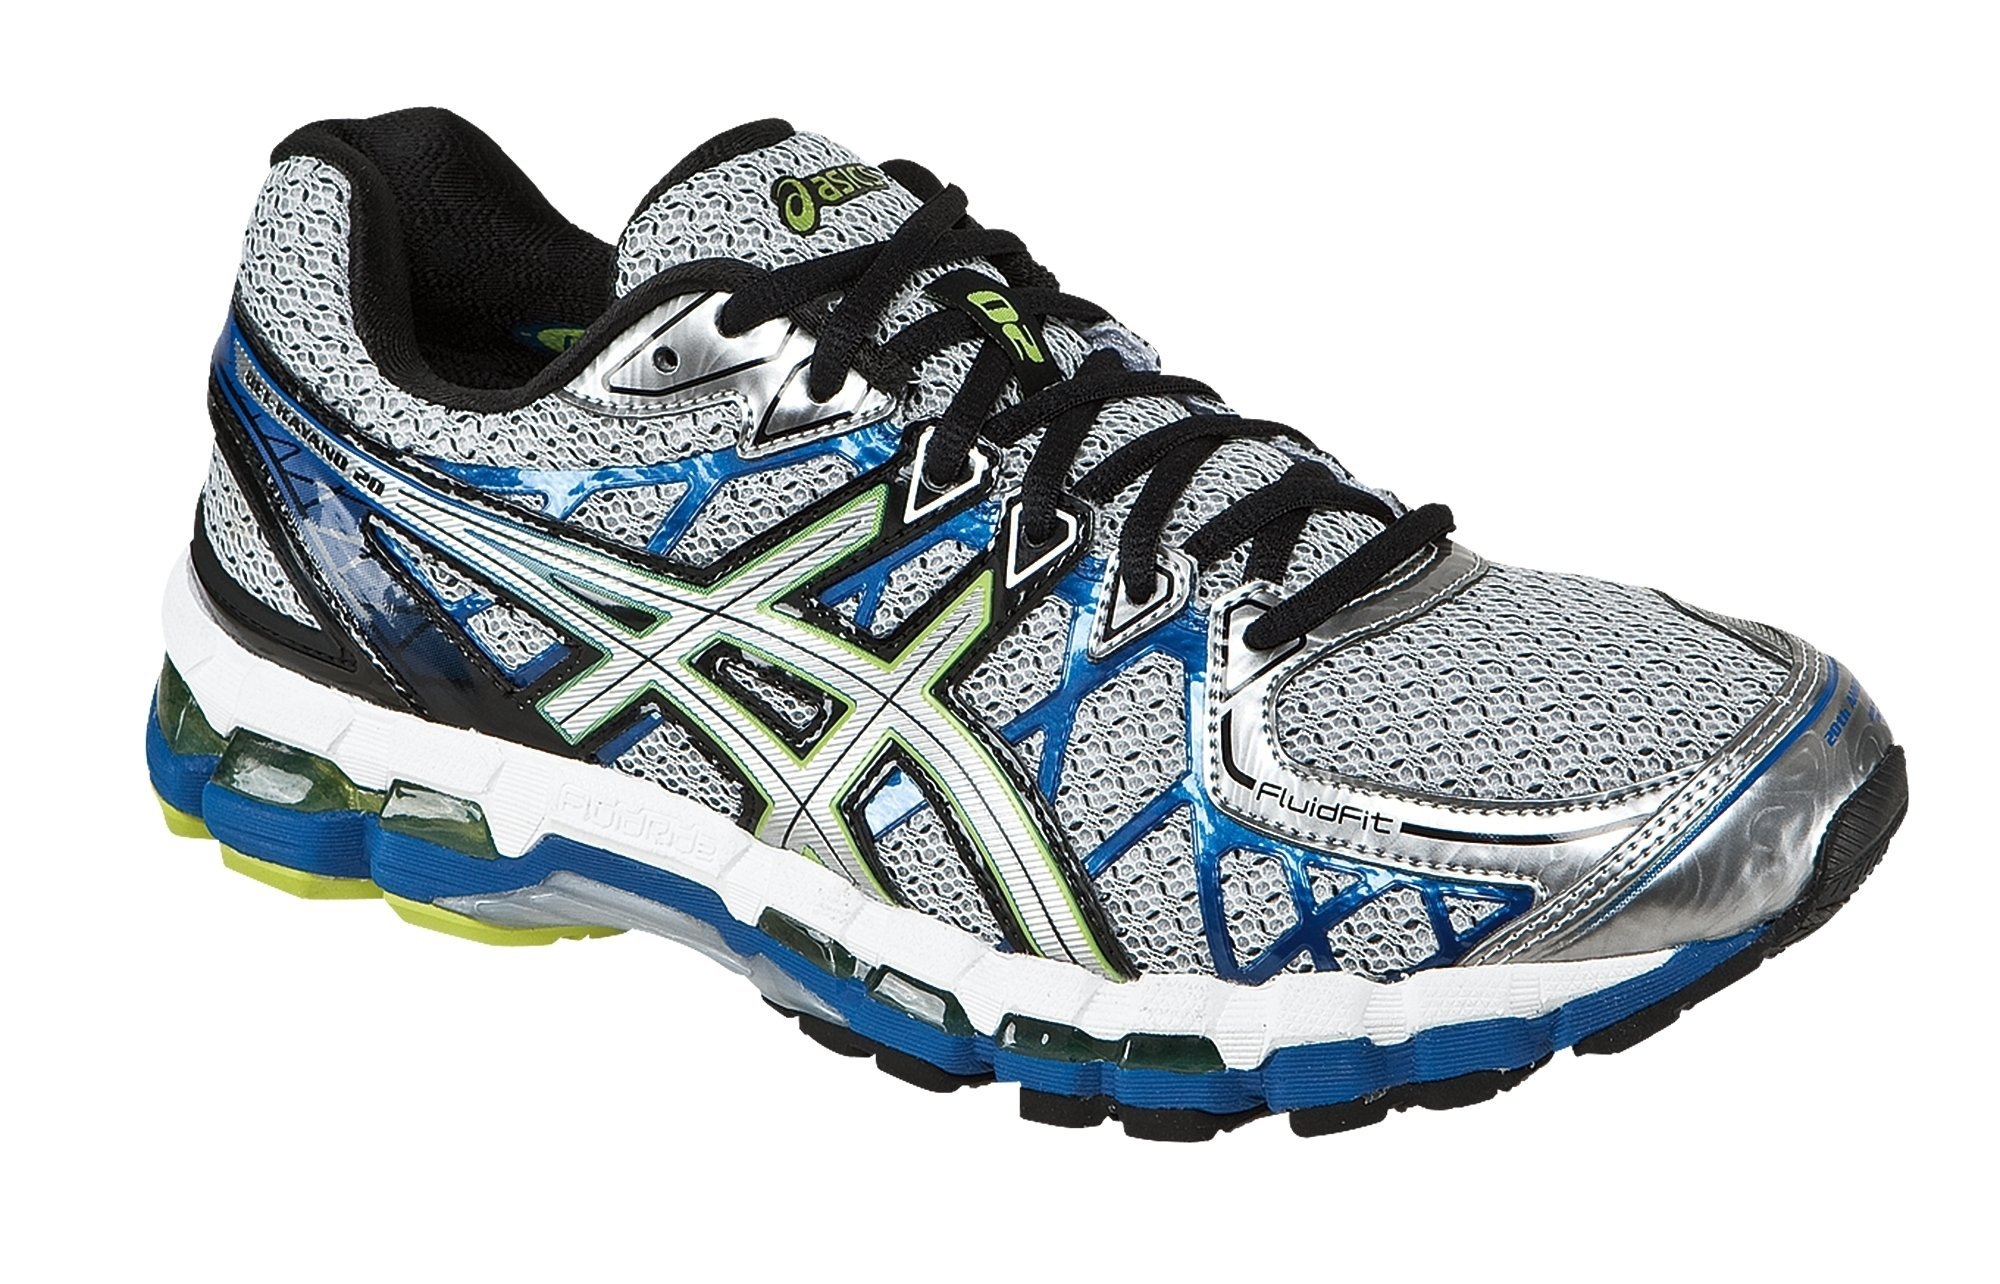 quality design 2eb63 18c32 Asics Gel-Kayano 20 Shoes   R A Cycles